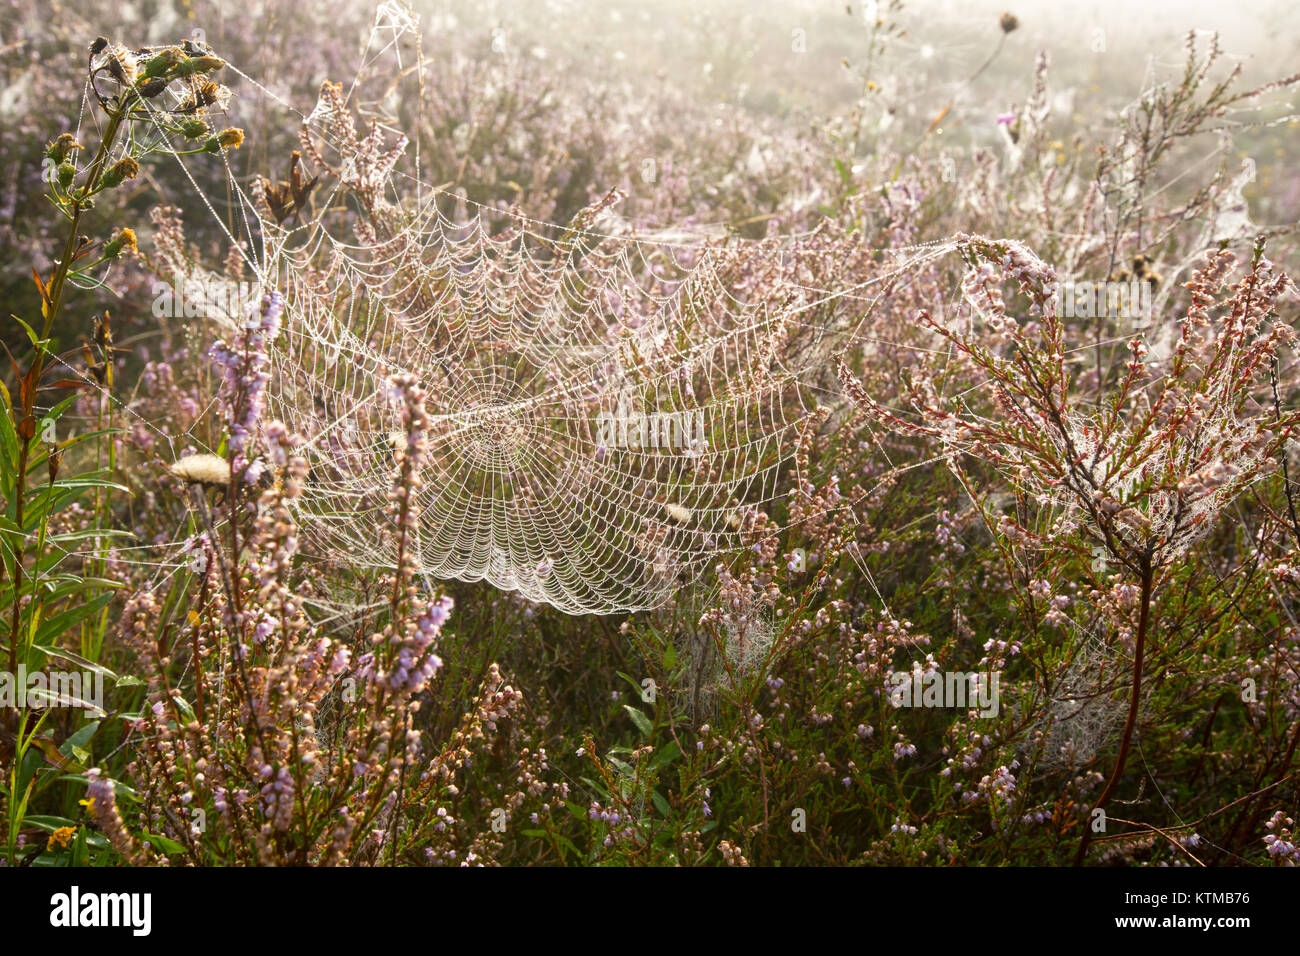 Early misty morning dew drops on wild mountain grassy meadow with wild lilac heather flowers and spider web. Stock Photo